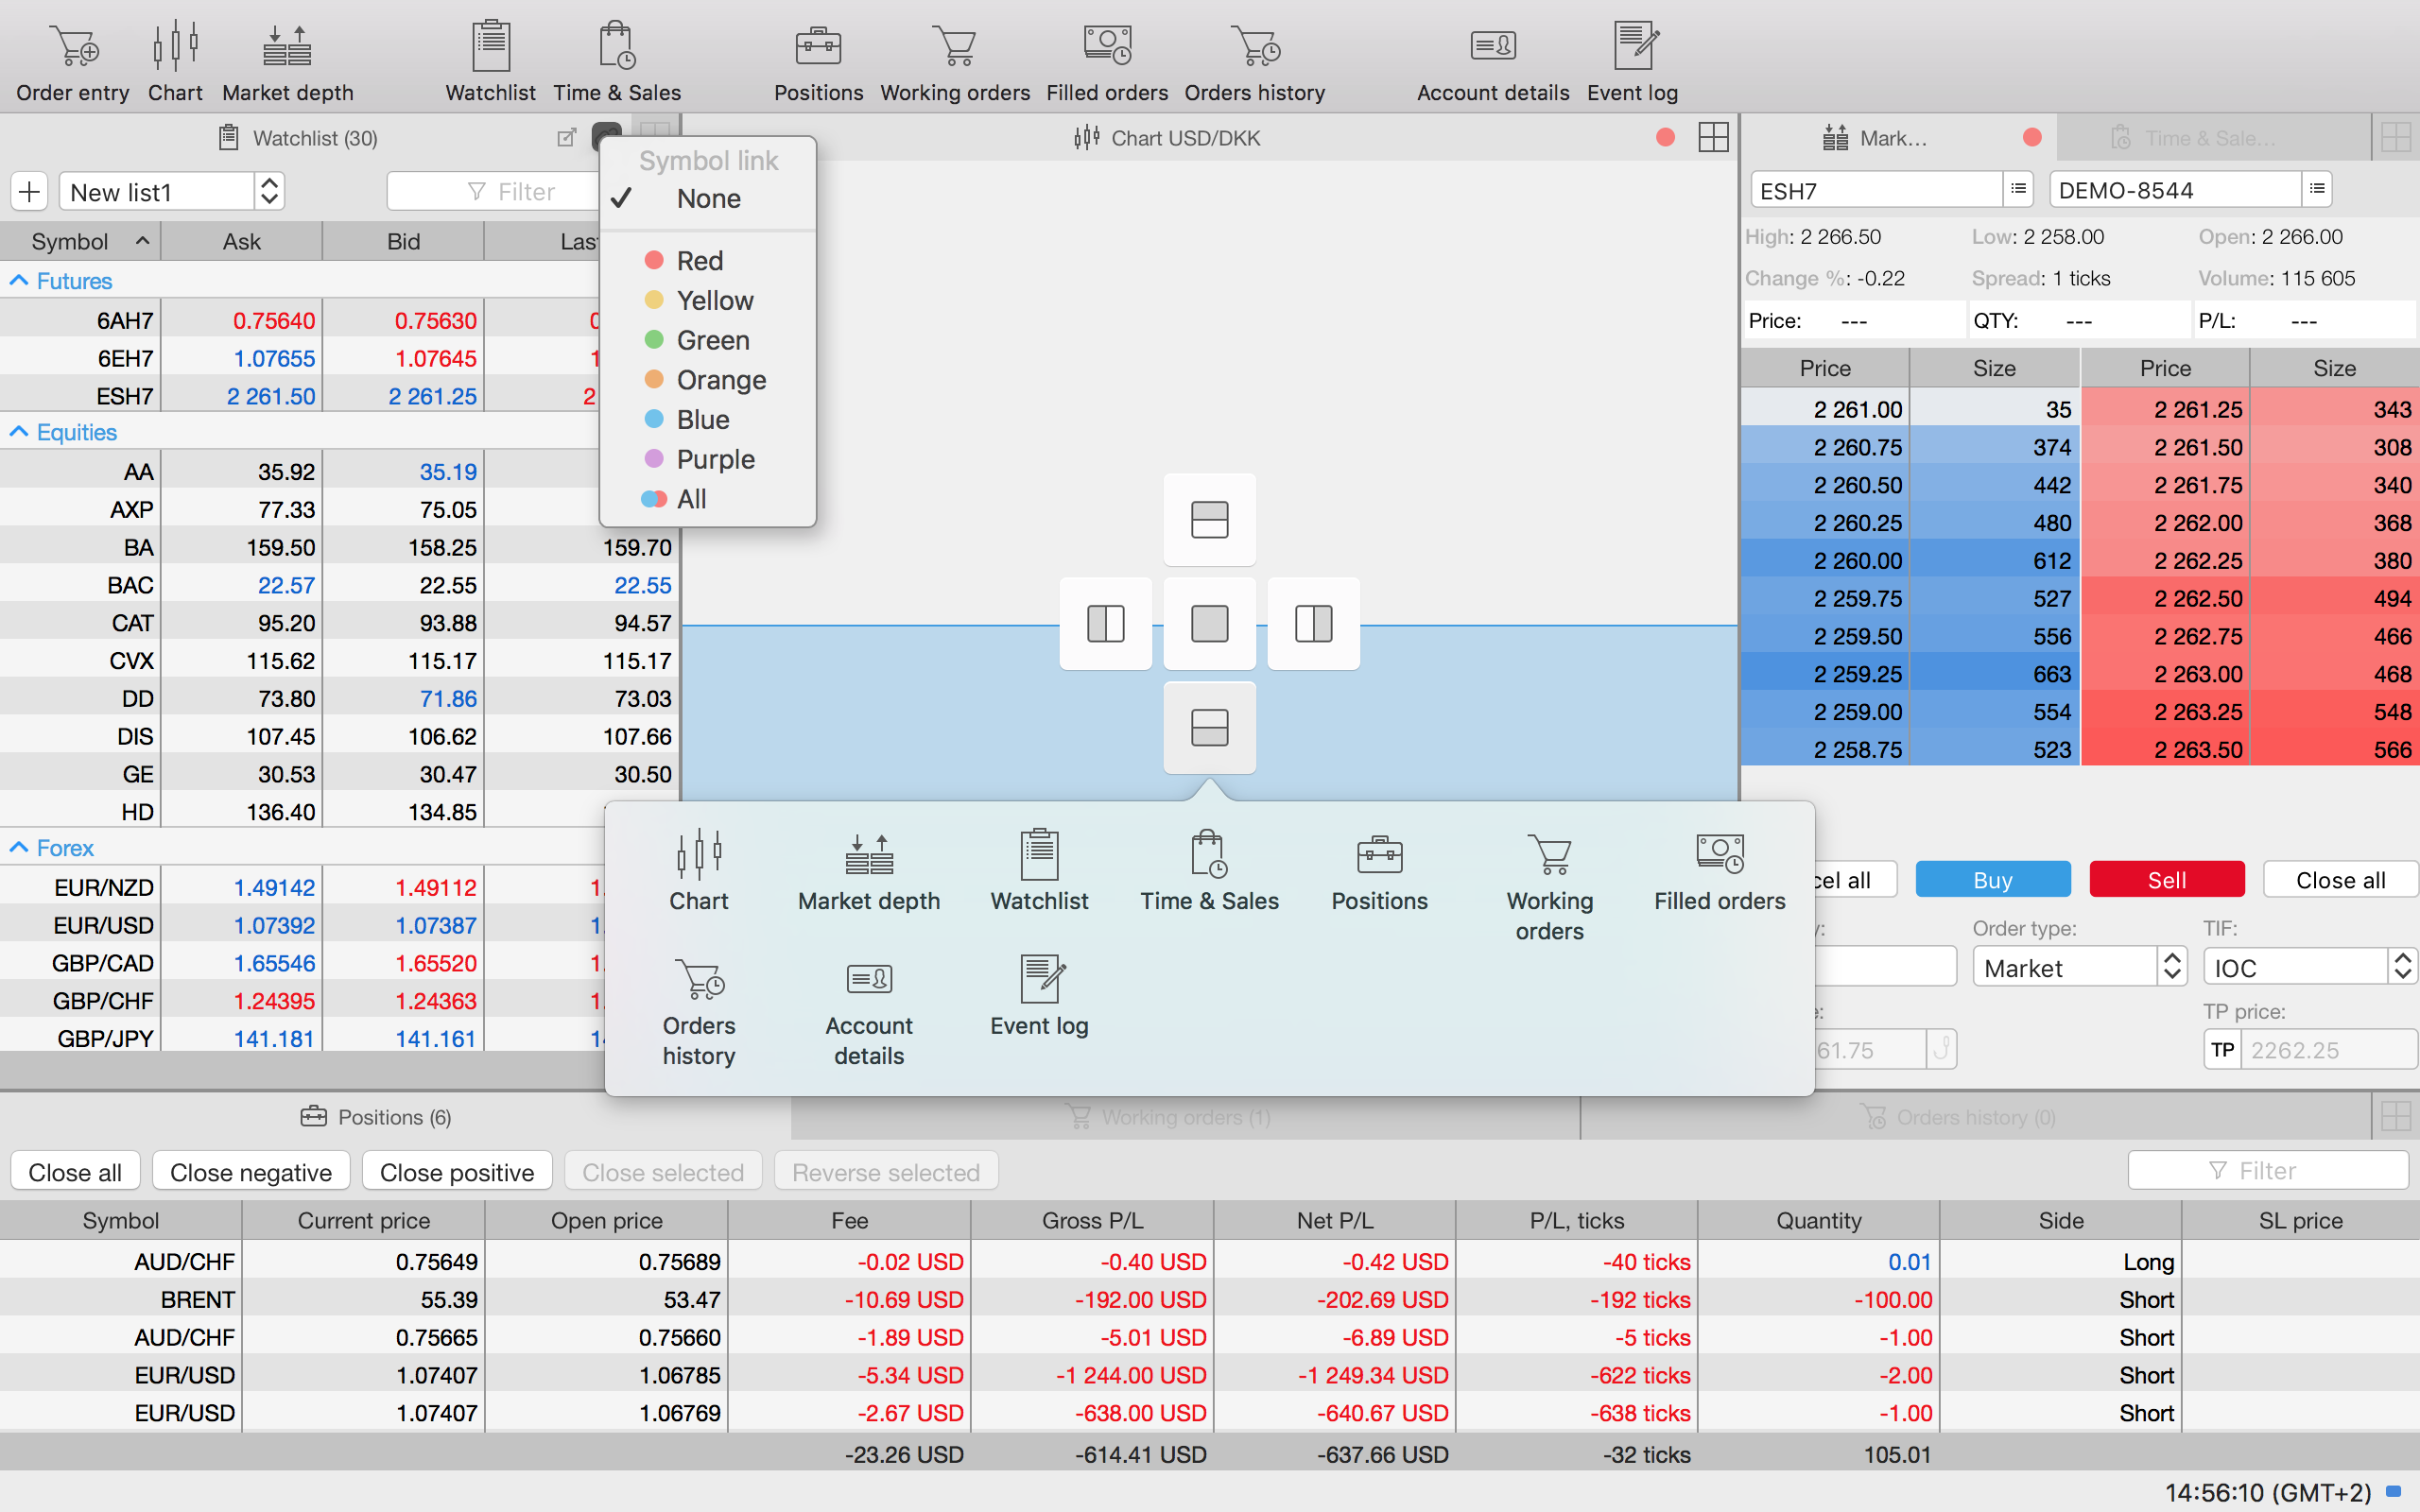 Trading platform interface for Mac